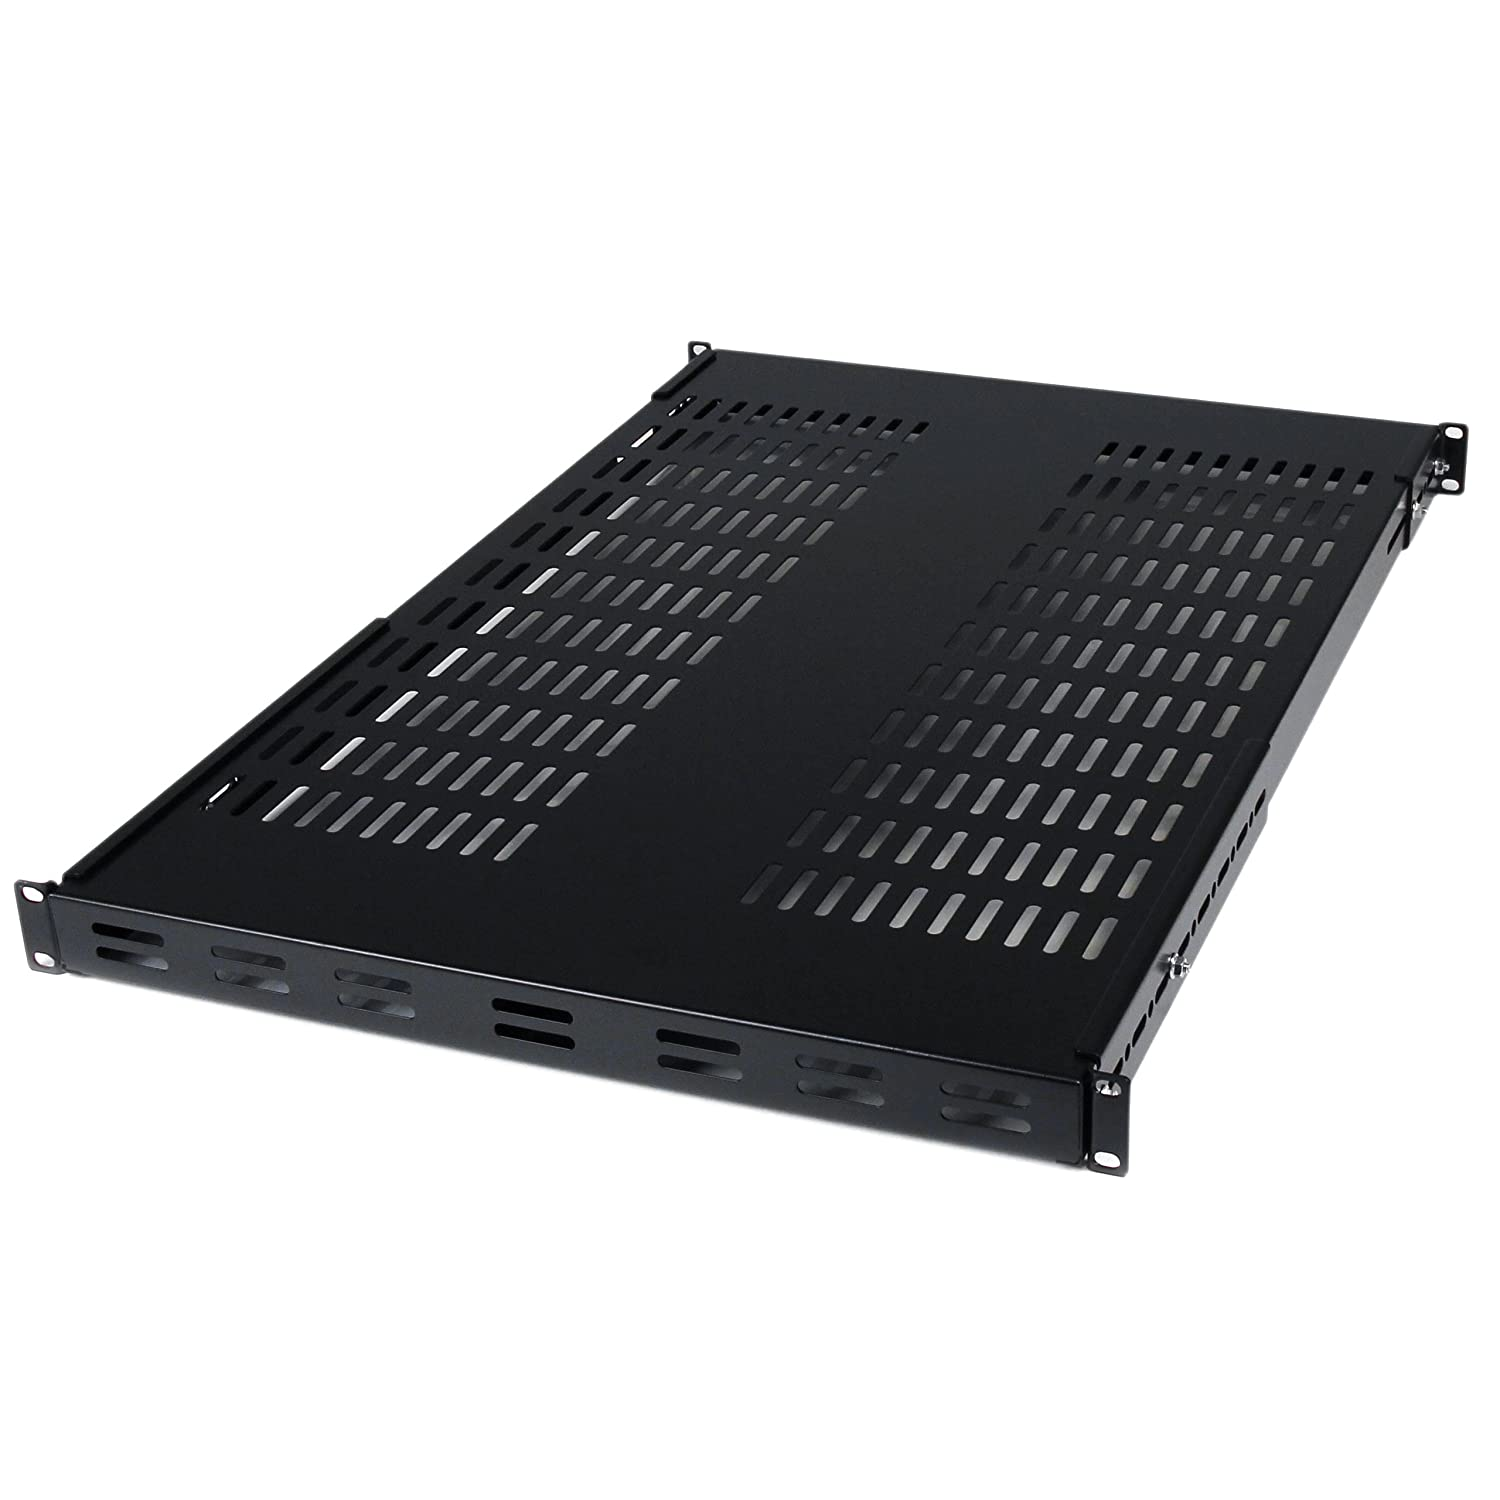 StarTech.com Server Rack Shelf - 1U Shelf - 175 lb. / 80 kg - Vented Network Rack Tray - 19'' to 38'' Adjustable Mount Depth (ADJSHELF)